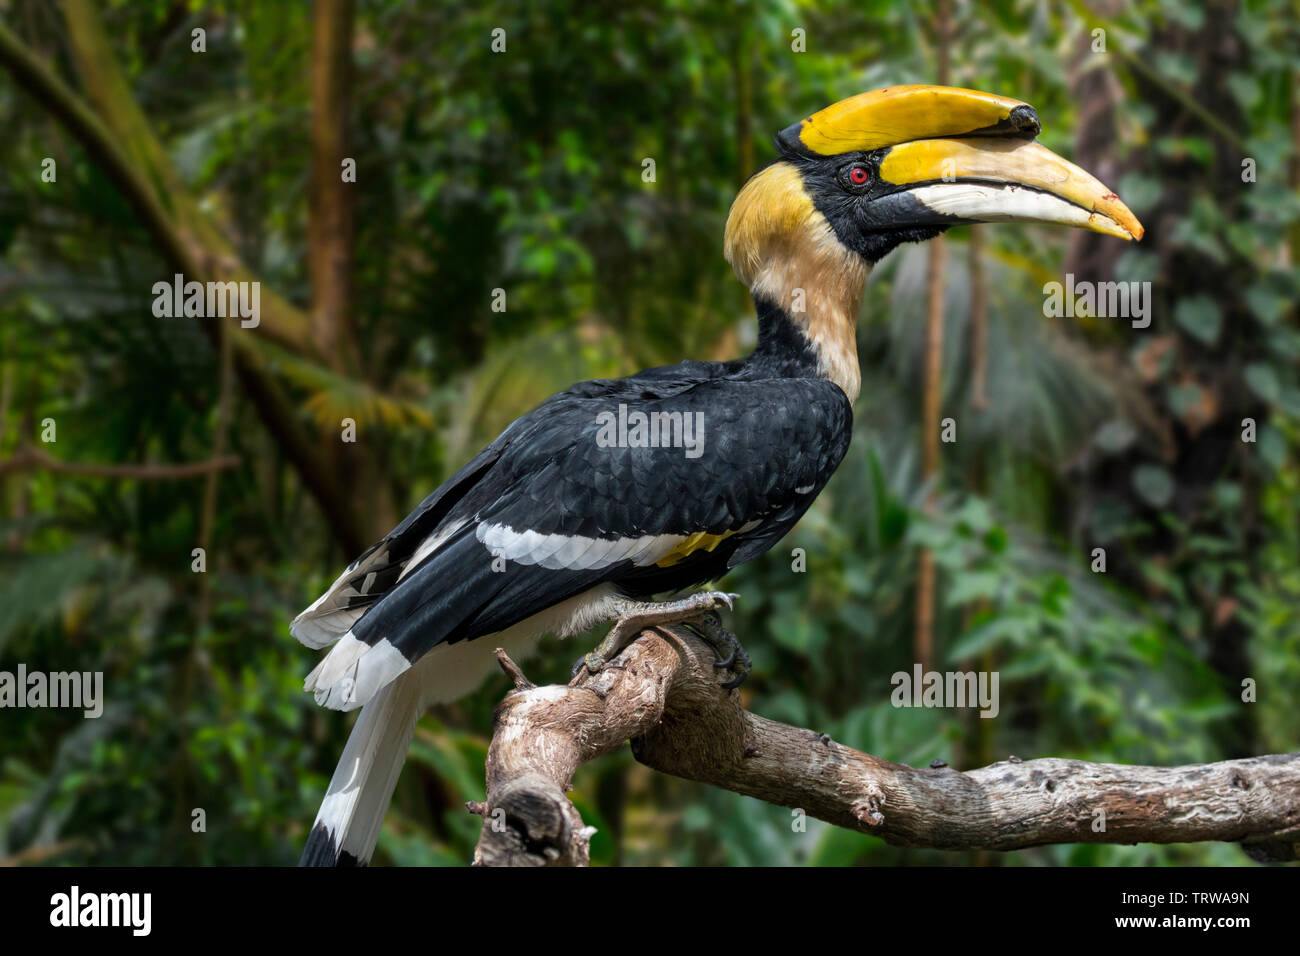 Great hornbill / great Indian hornbill / great pied hornbill (Buceros bicornis) native to the Indian subcontinent and Southeast Asia - Stock Image